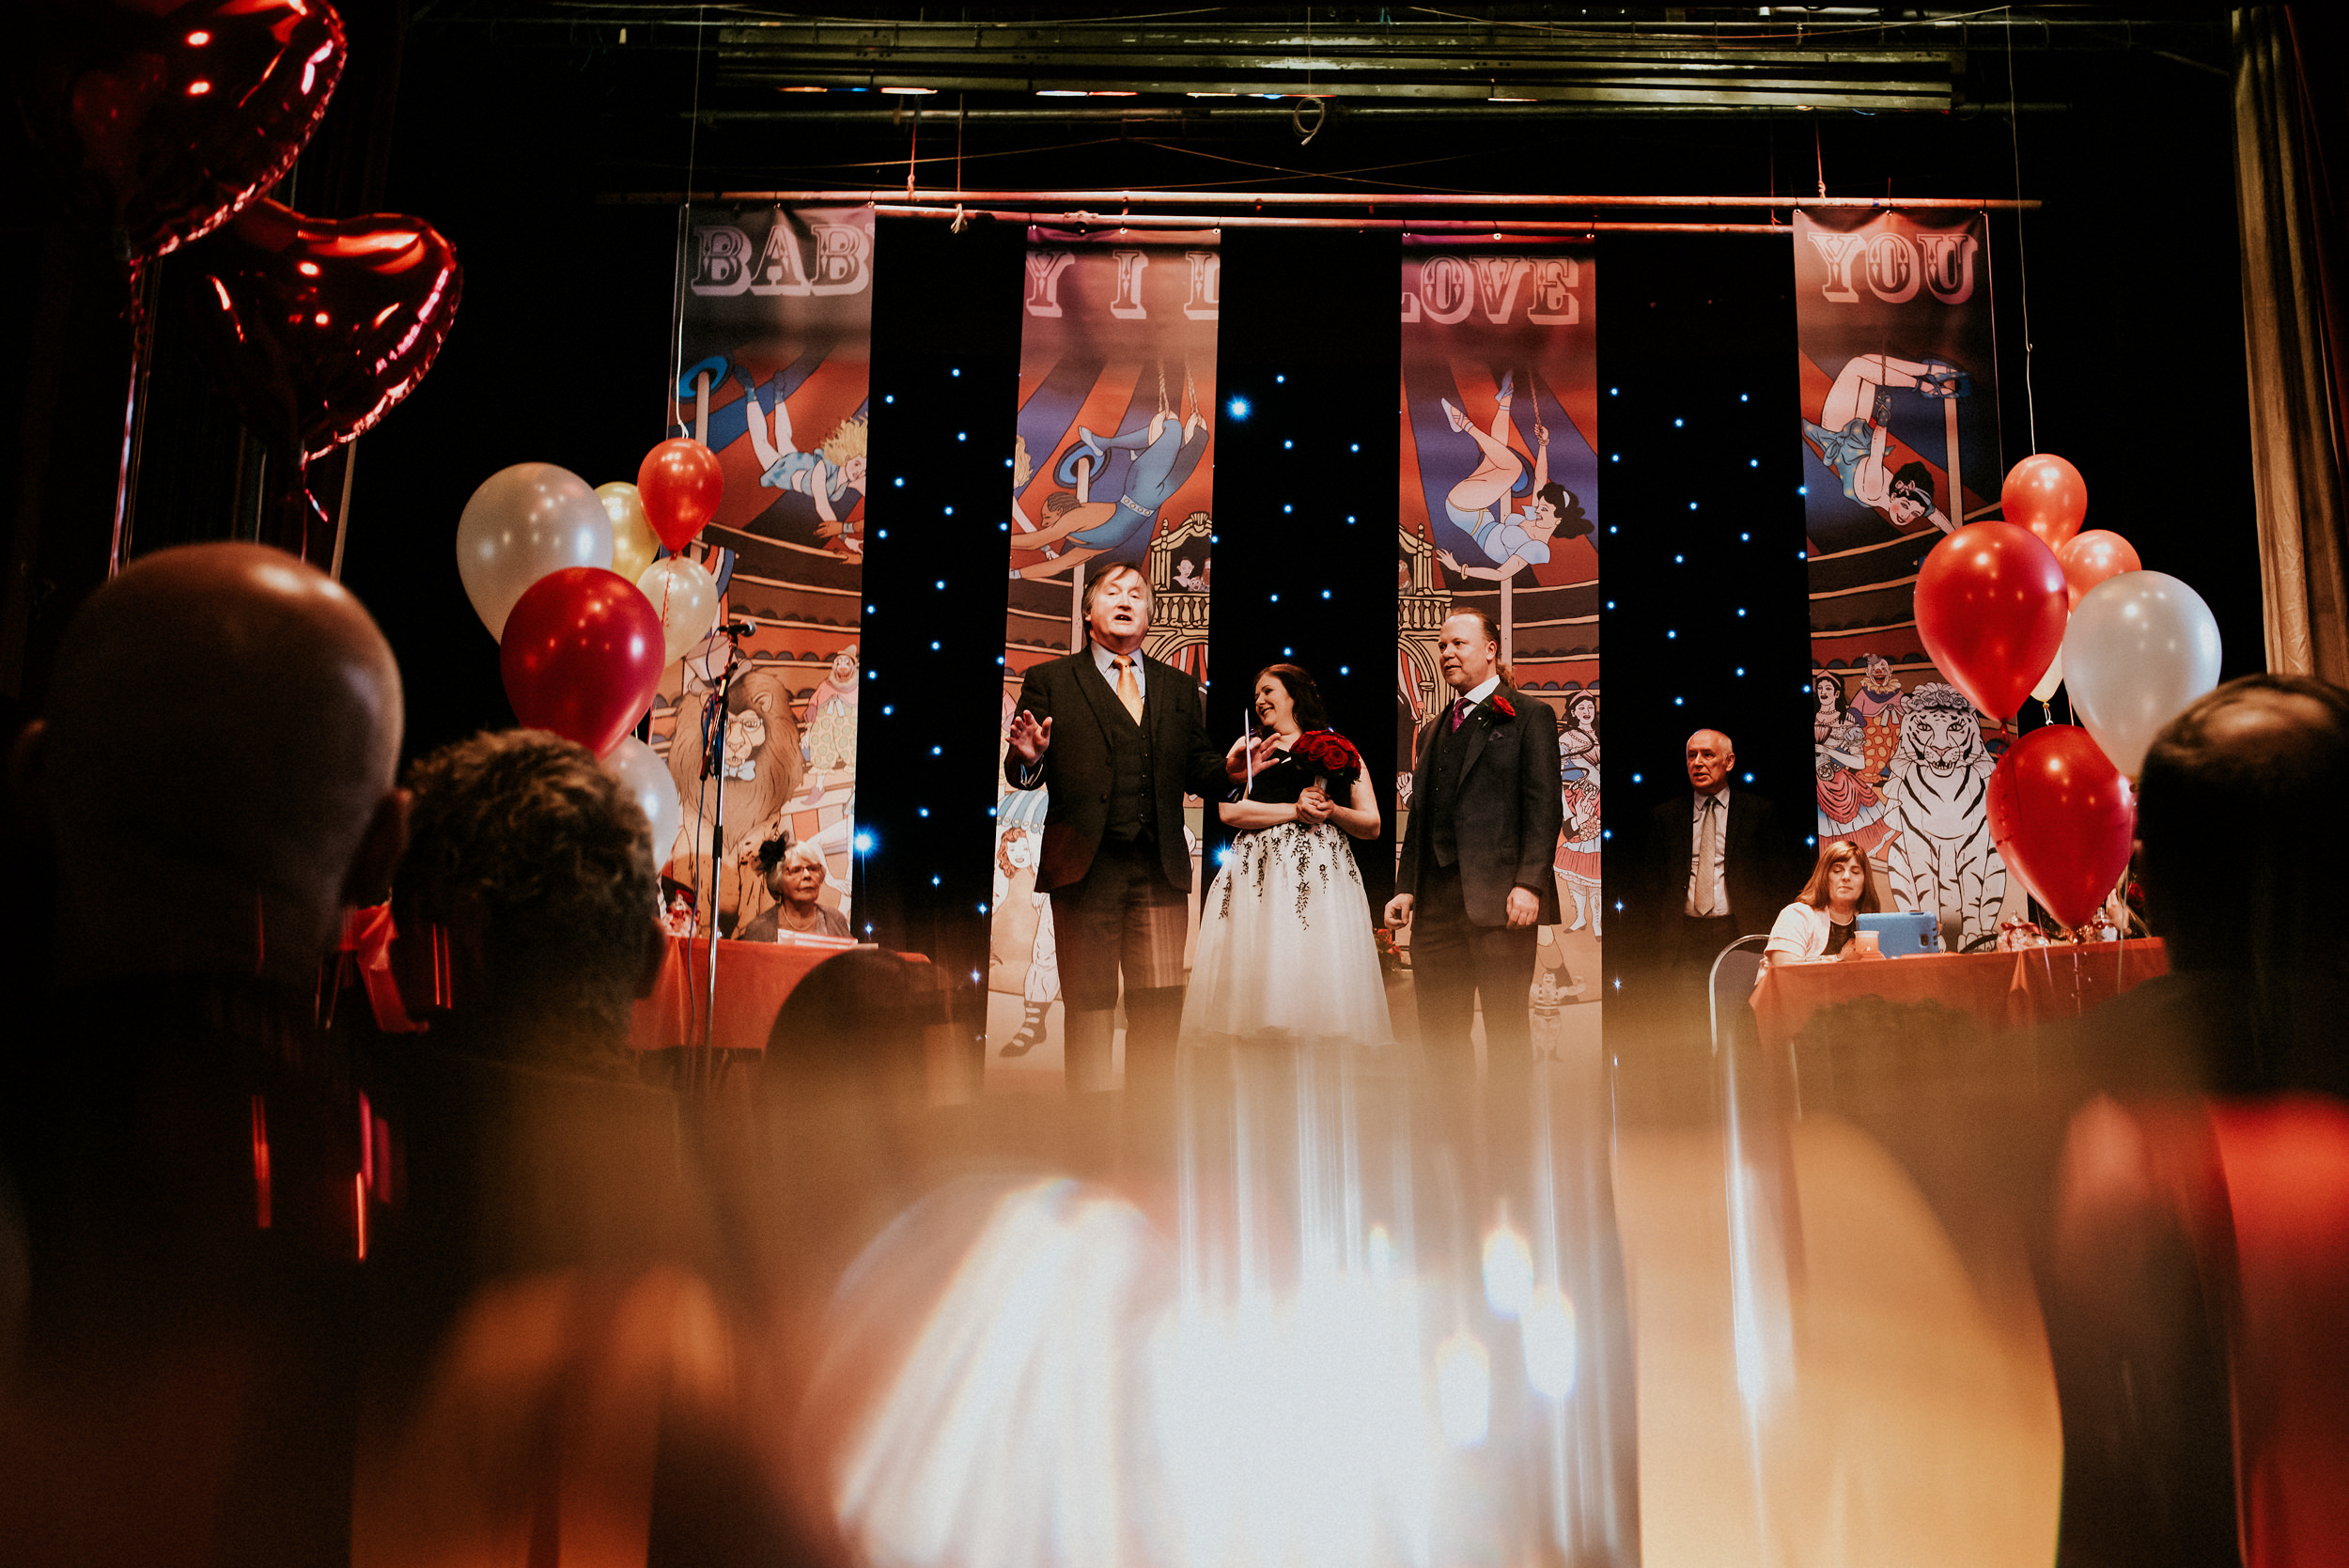 Guiseley-Theatre-Leeds-Circus-Themed-Wedding-By-Shutter-Go-Click-Photography-57.jpg